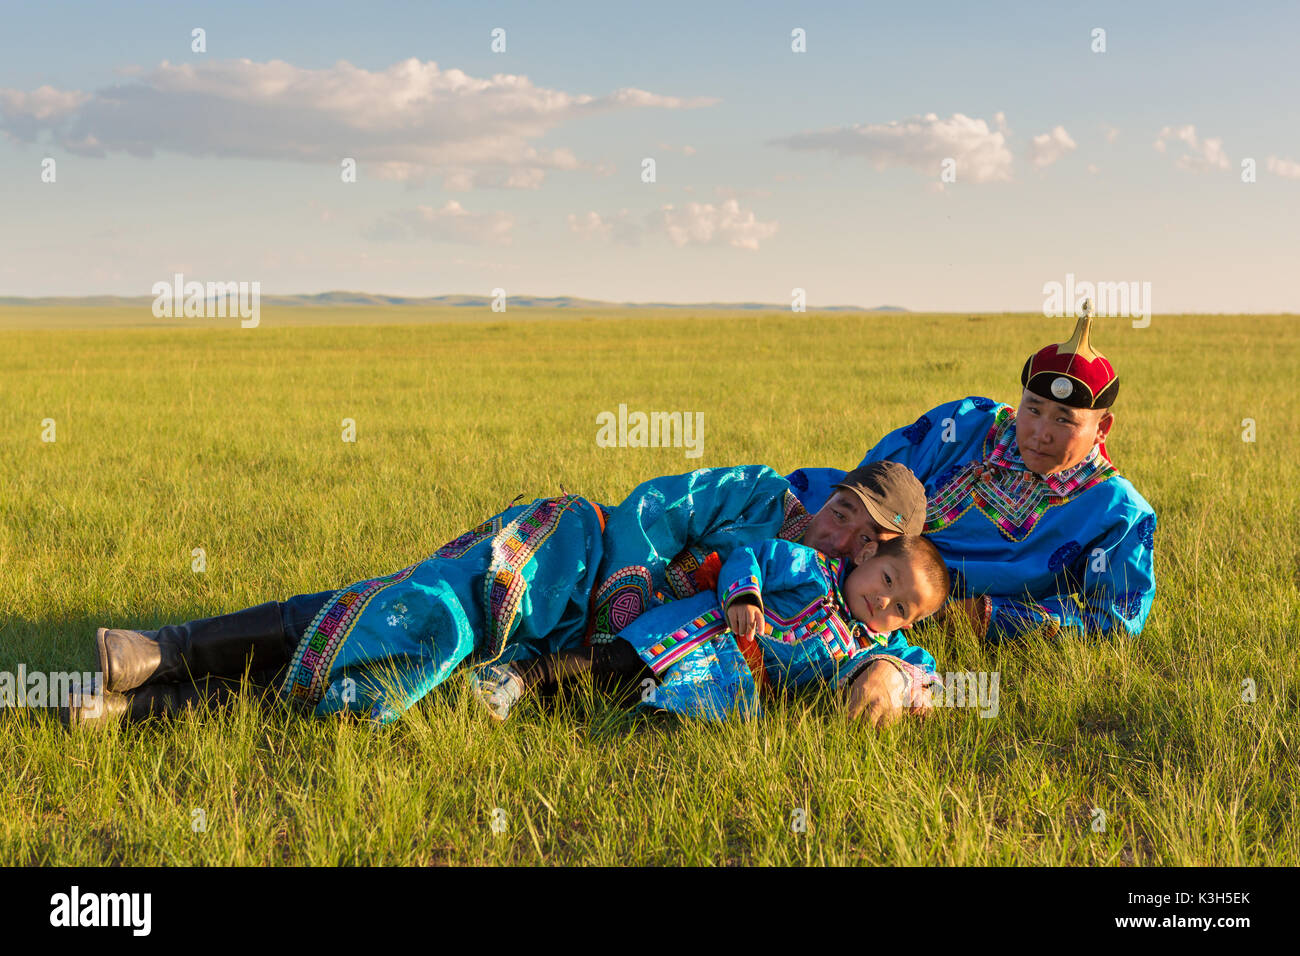 Inner Mongolia, China-July 30, 2017: Nomadic Mongolian family with their traditional colorful dresses near their yurt in immense grassland of the coun - Stock Image